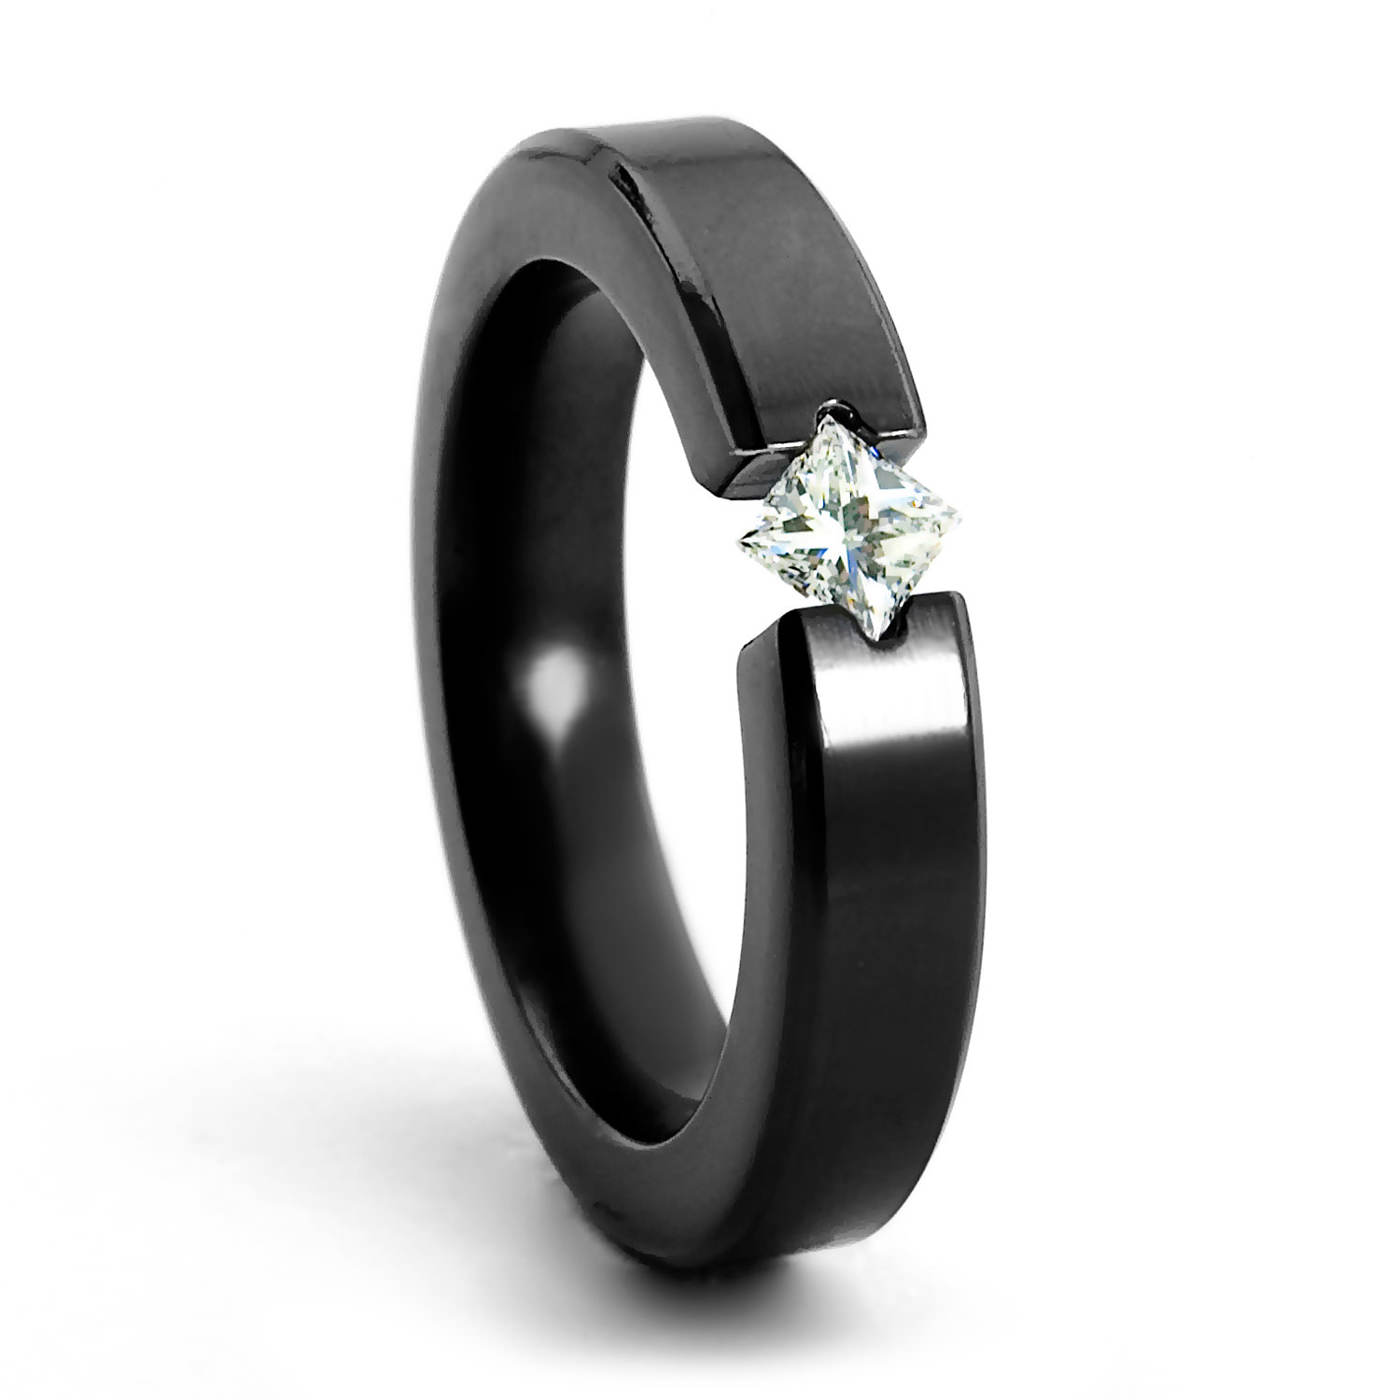 set rings ring ma band is his black jewellery hers steel engagement itm wedding stainless loading pc image titanium